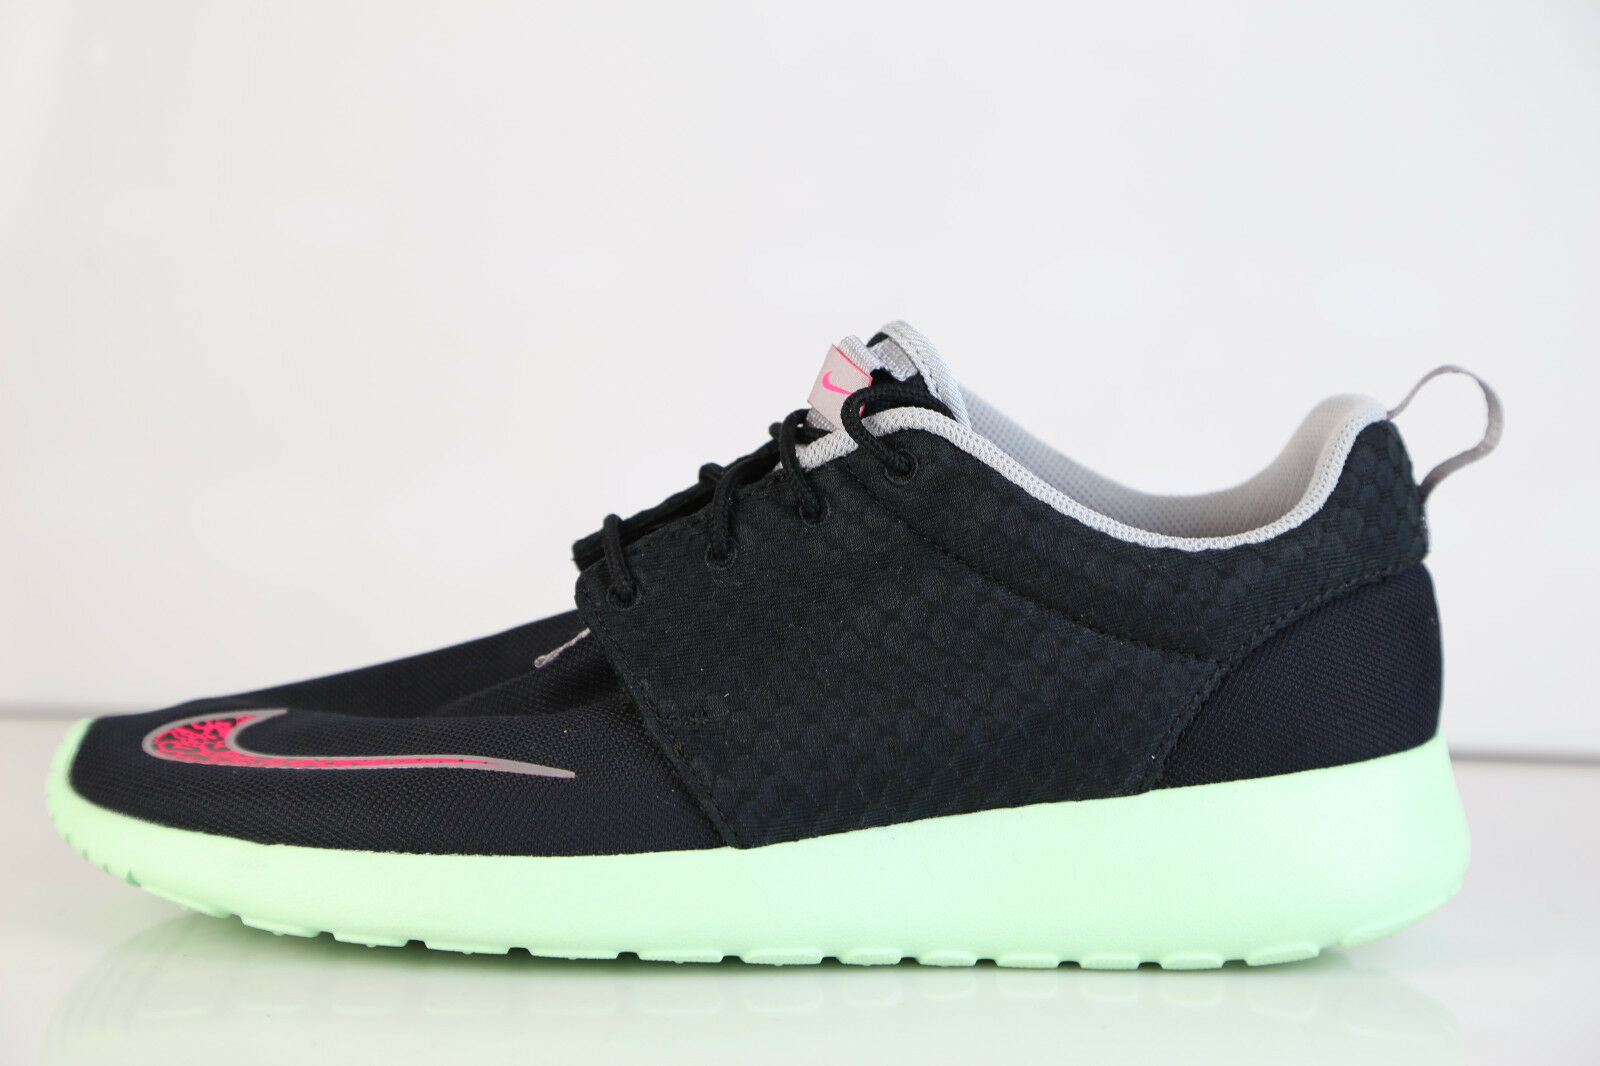 Nike rosherun fb yeezy - nero / rosa flash dare nuovo mnt chrome 580573-063 10